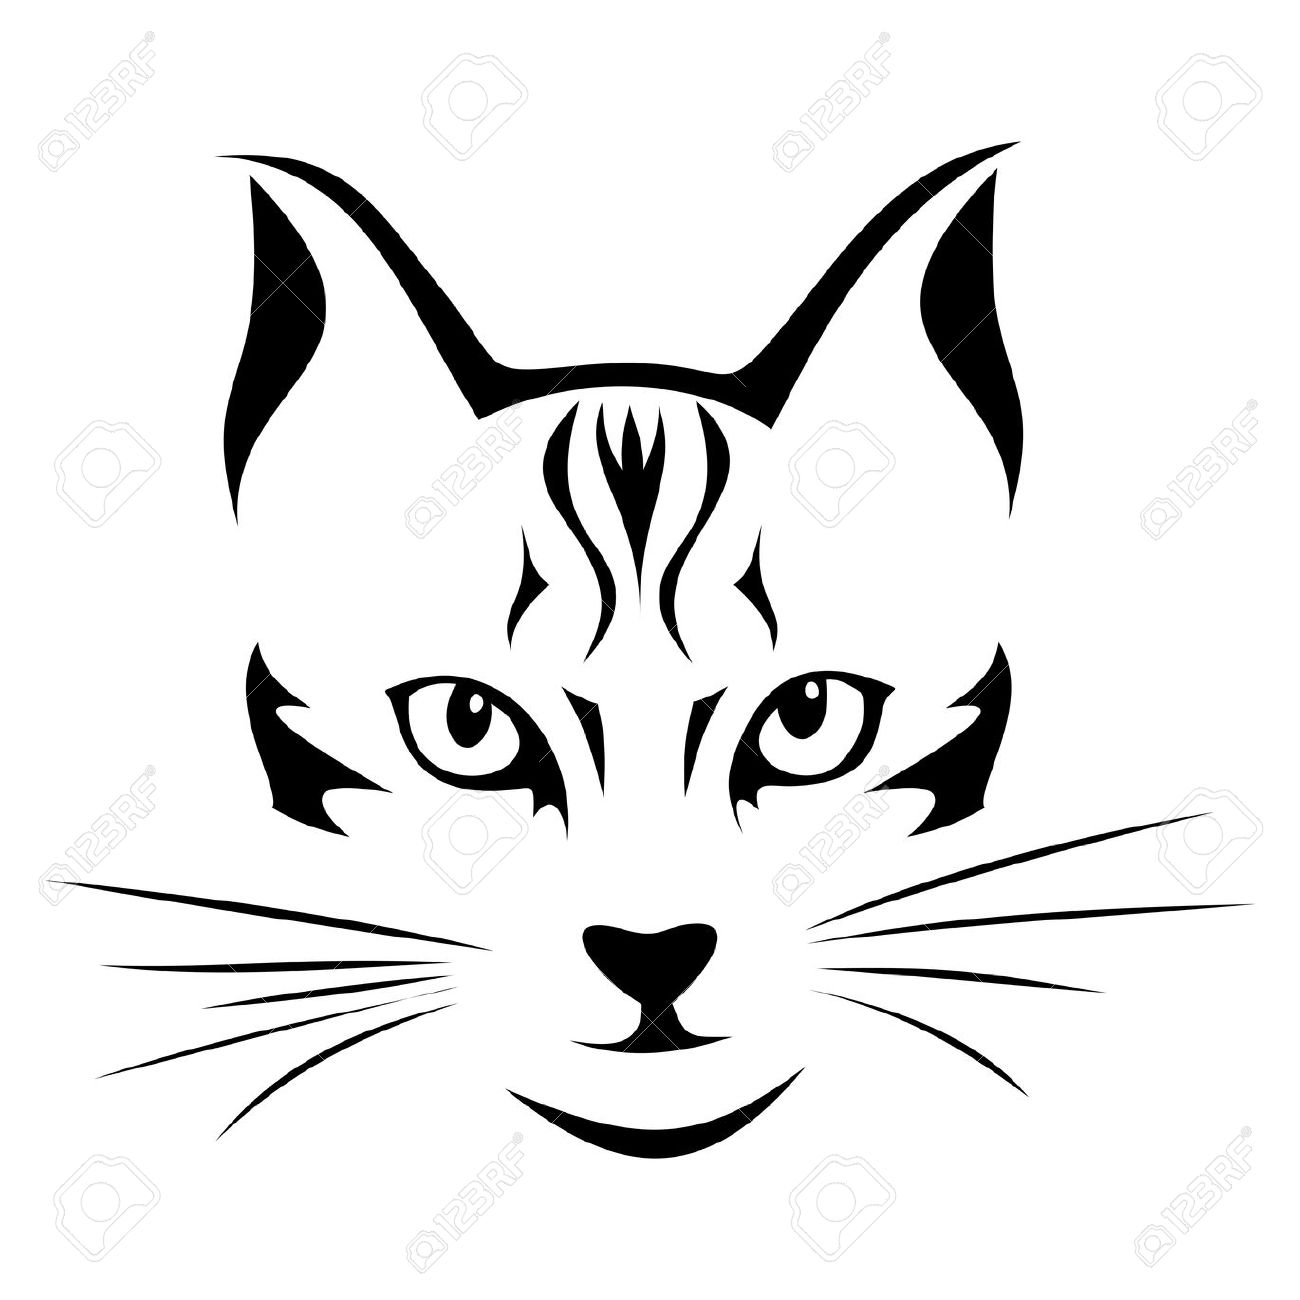 Black Silhouette Of Cat Vector Illustration Royalty Free Cliparts.